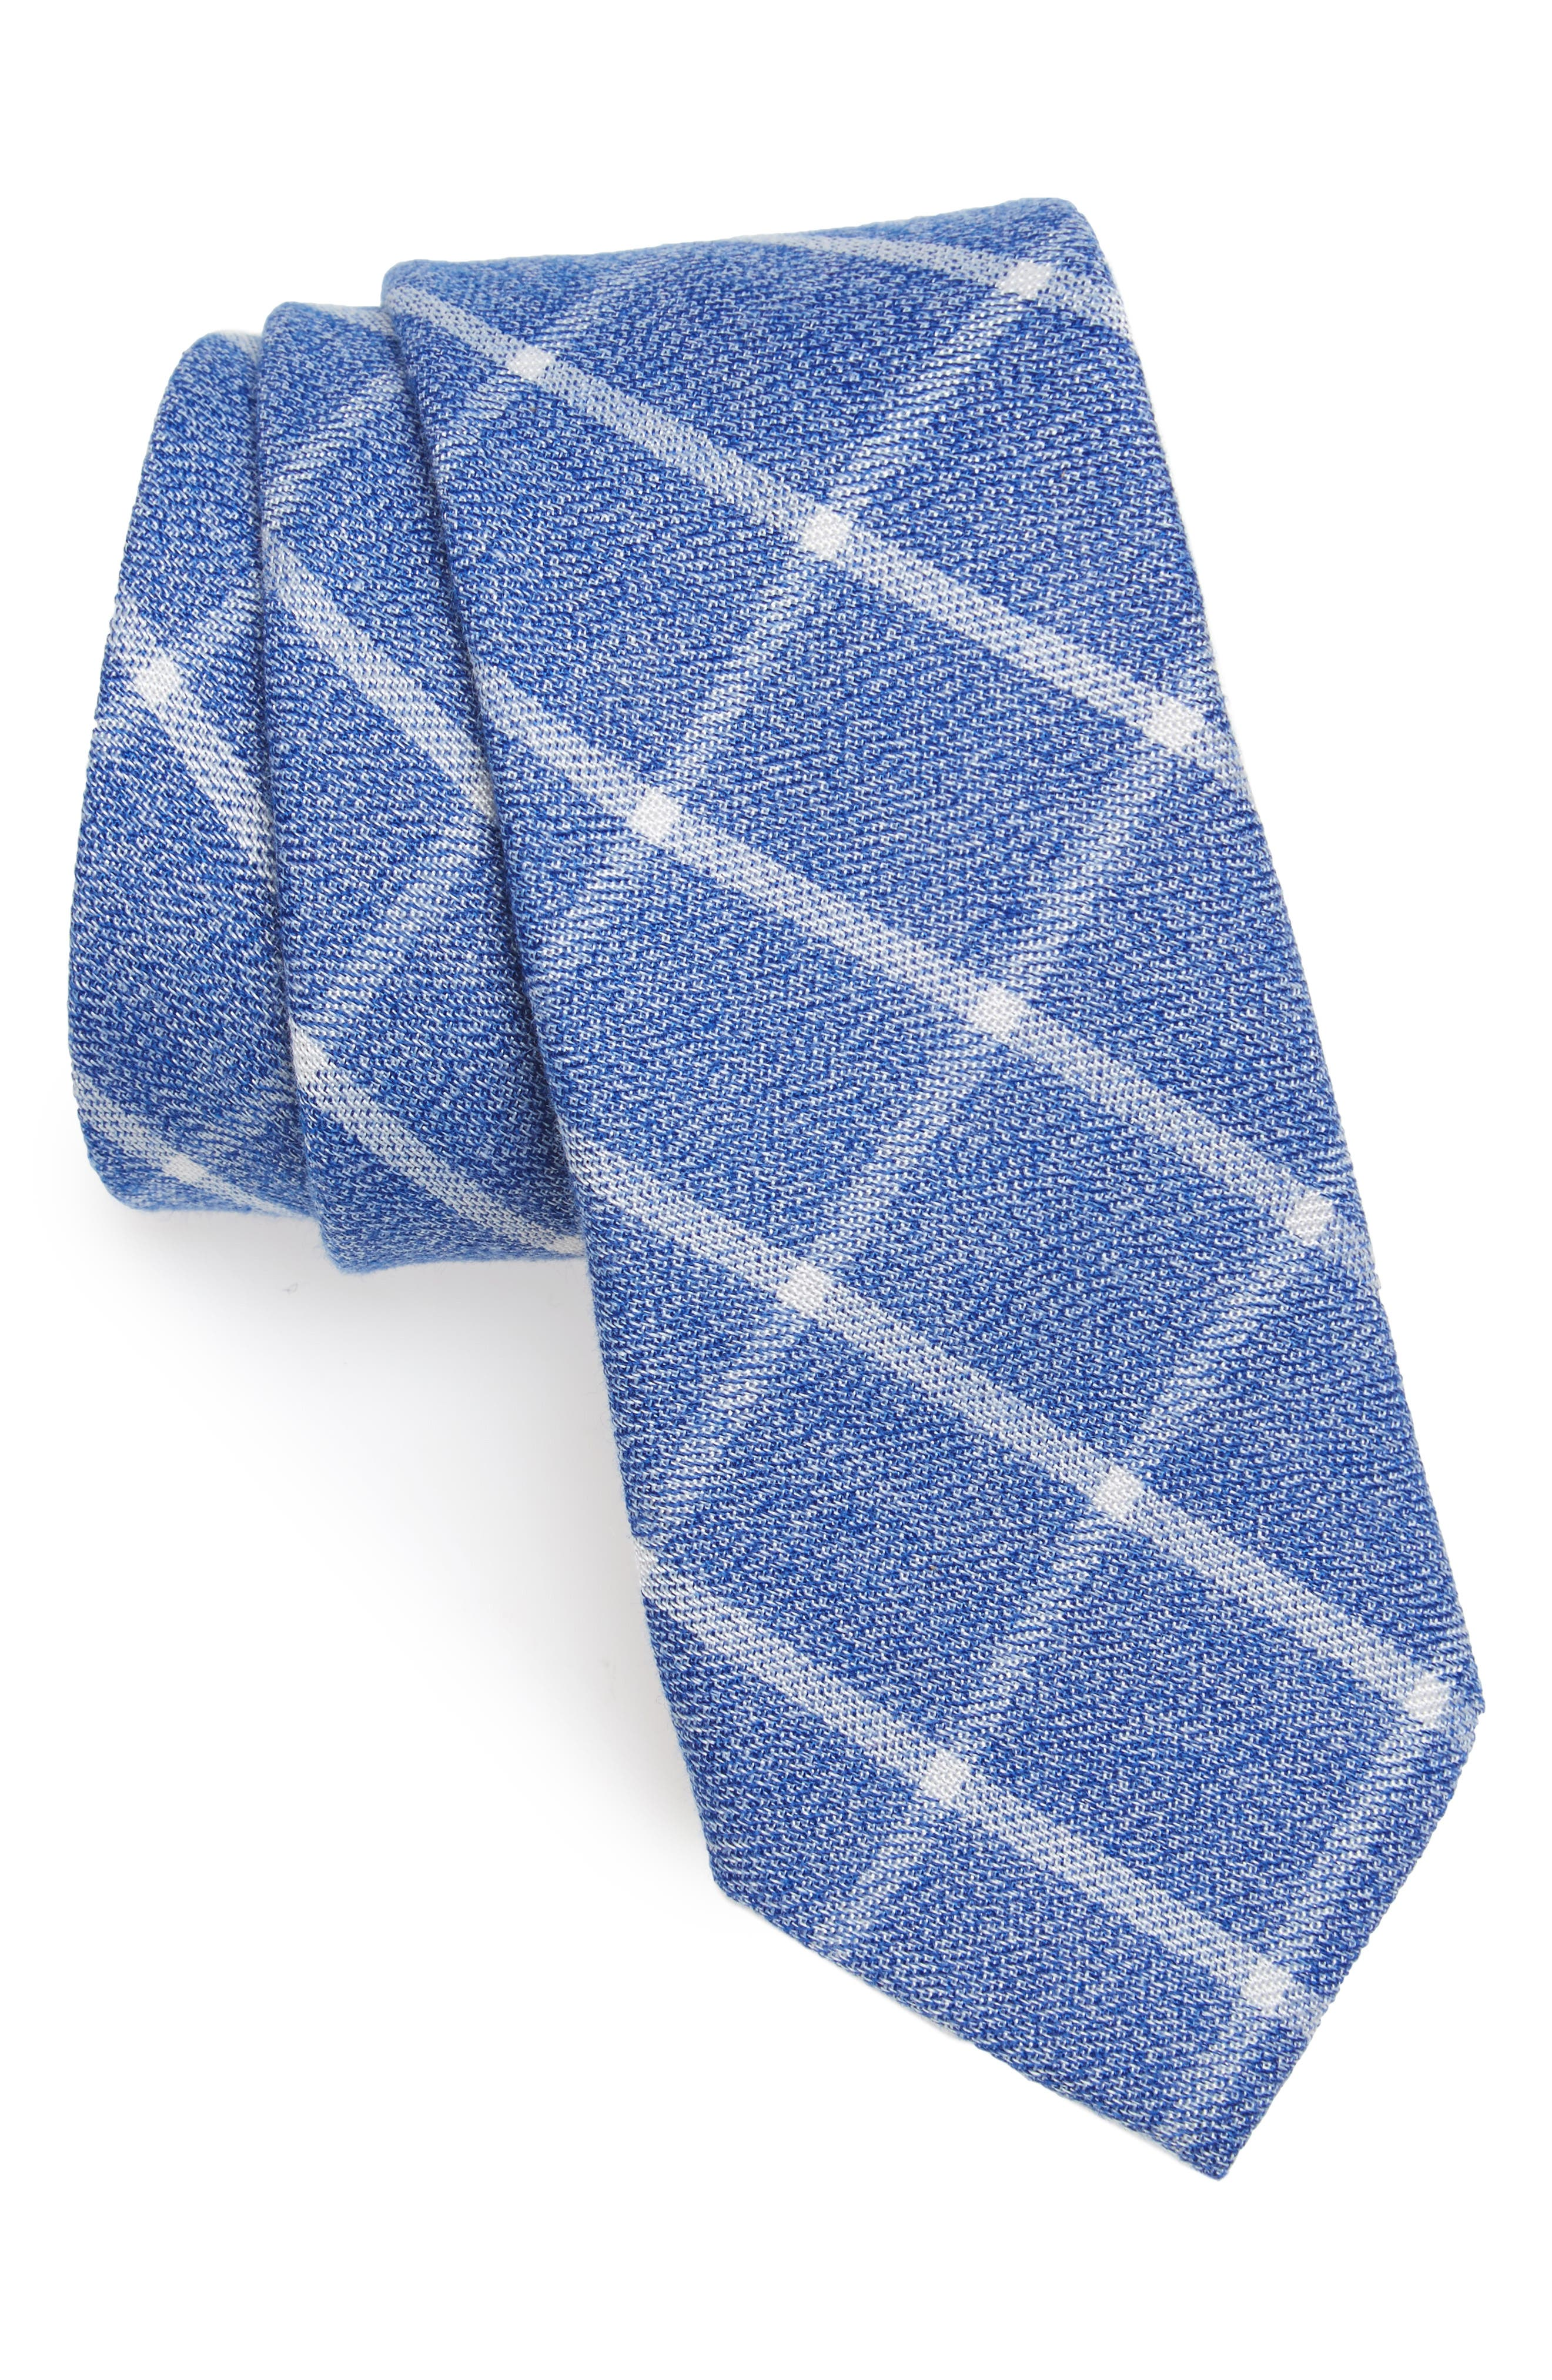 Wilbur Check Cotton Tie,                         Main,                         color, 410